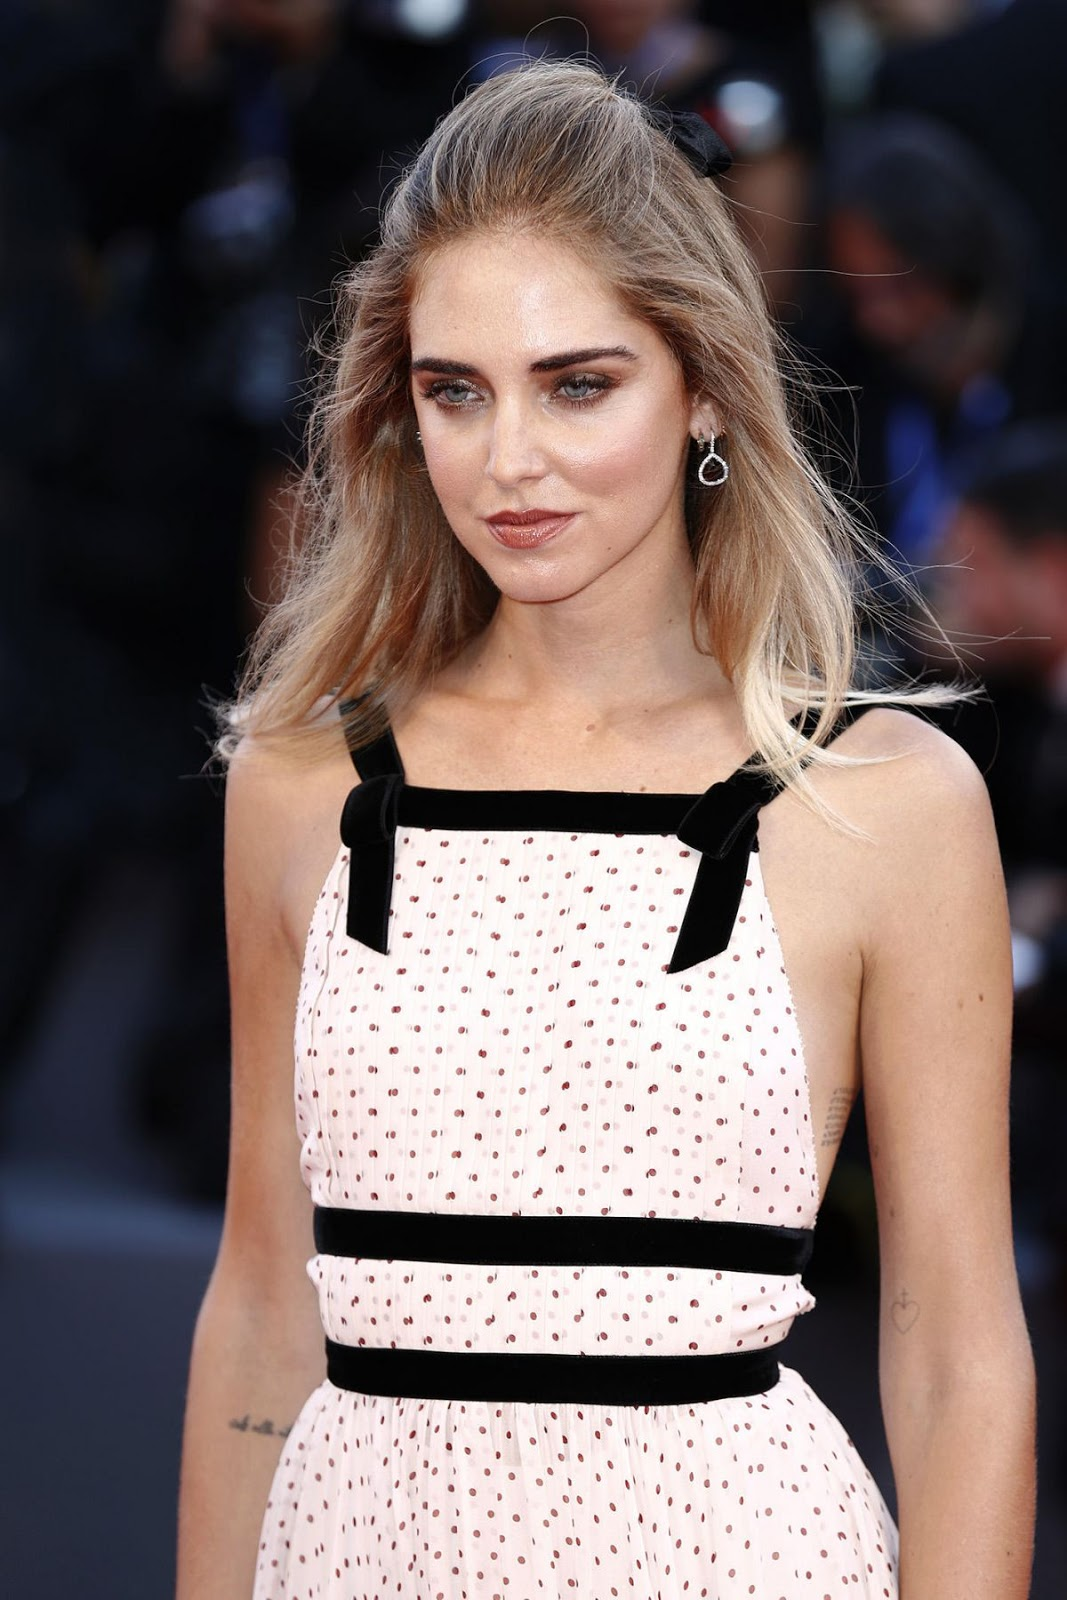 HQ Photos of Chiara Ferragni with Tattoo At The Young Pope Premiere At 2016 Venice Film Festival